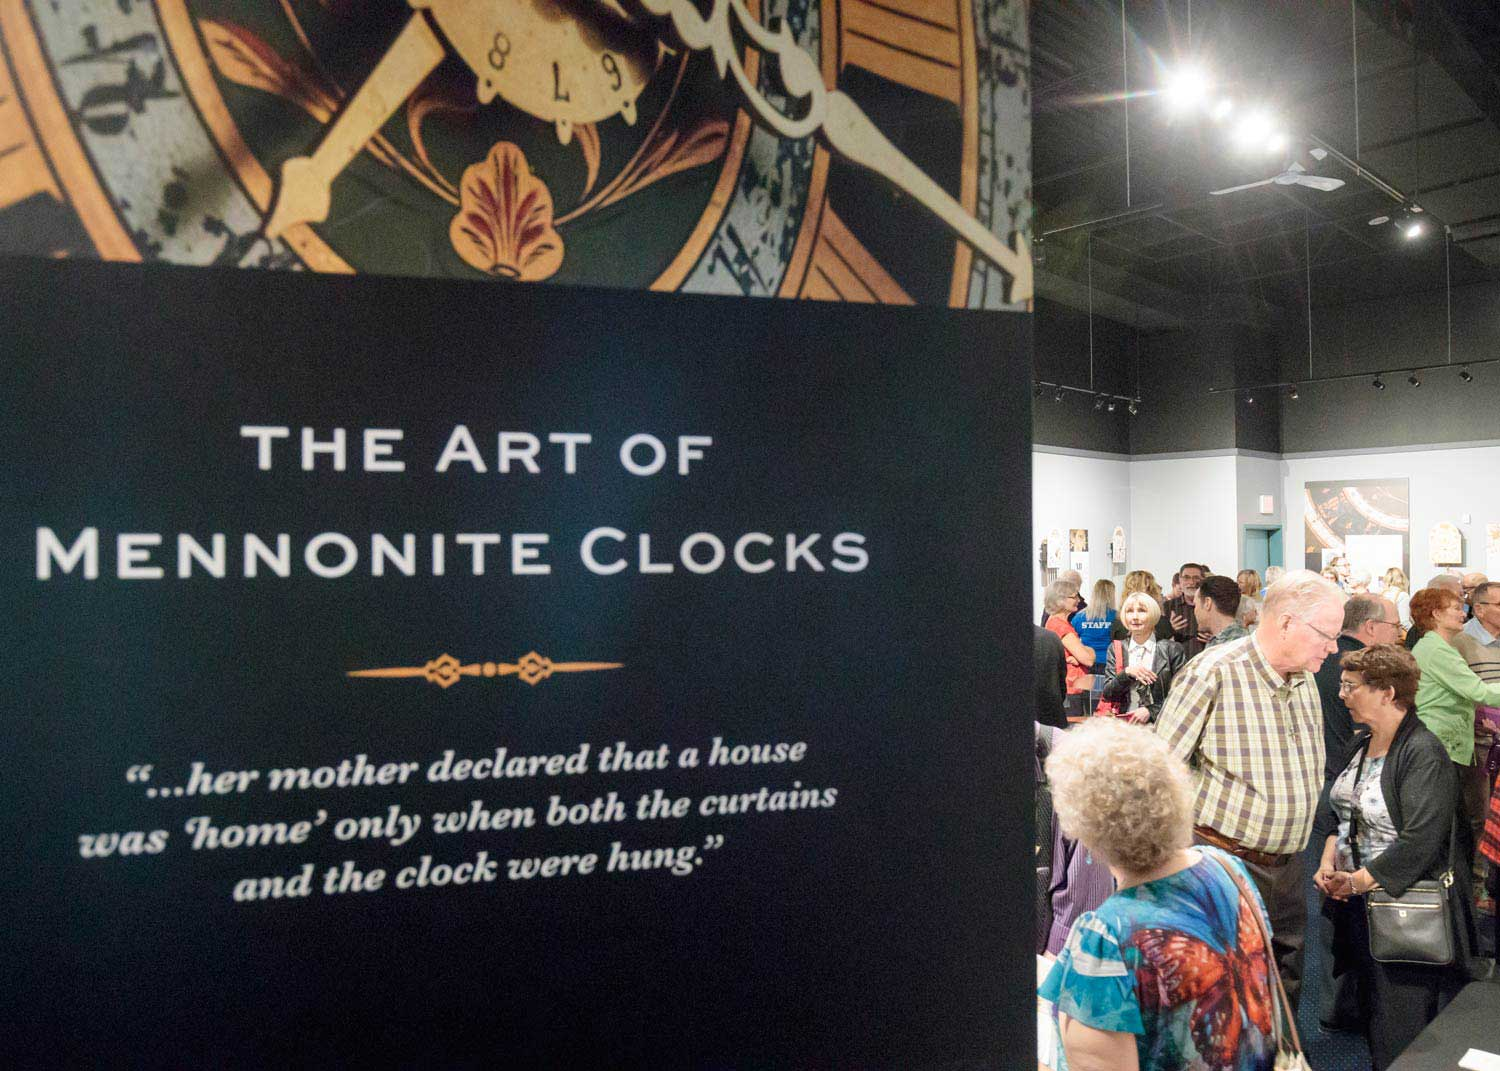 The exhibit opening attracted a large crowd including clock owners who generously loaned their clocks for the exhibit.